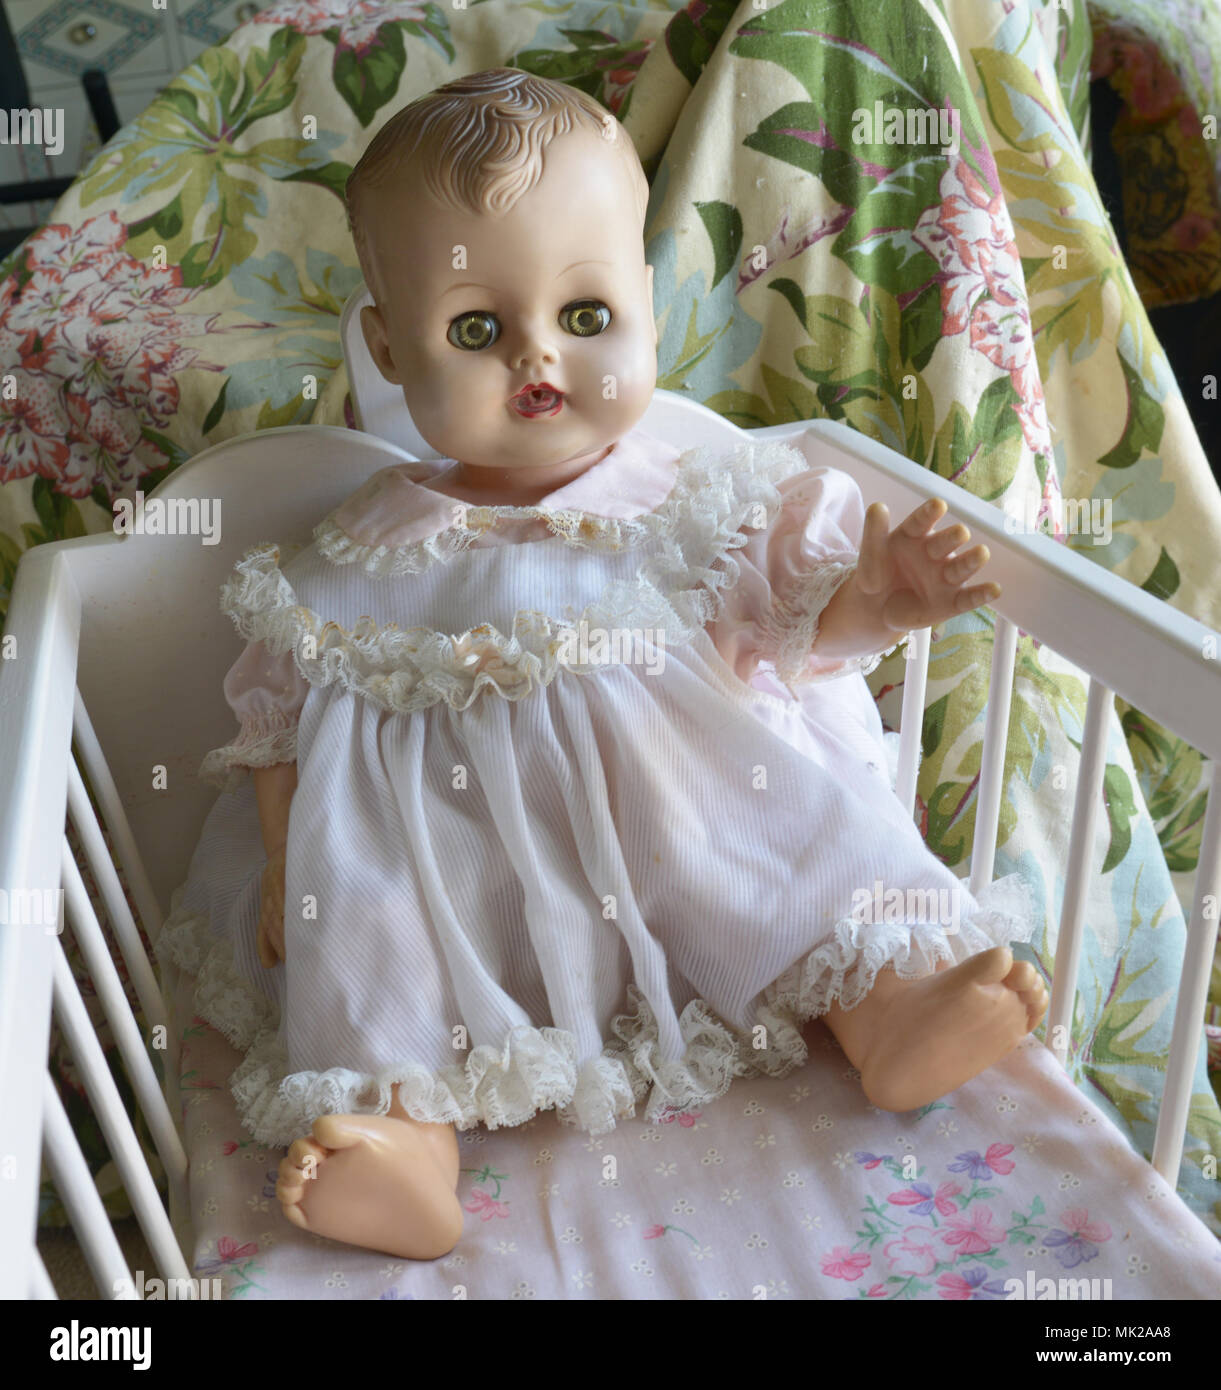 Baby Dolls Stock Photos Amp Baby Dolls Stock Images Alamy